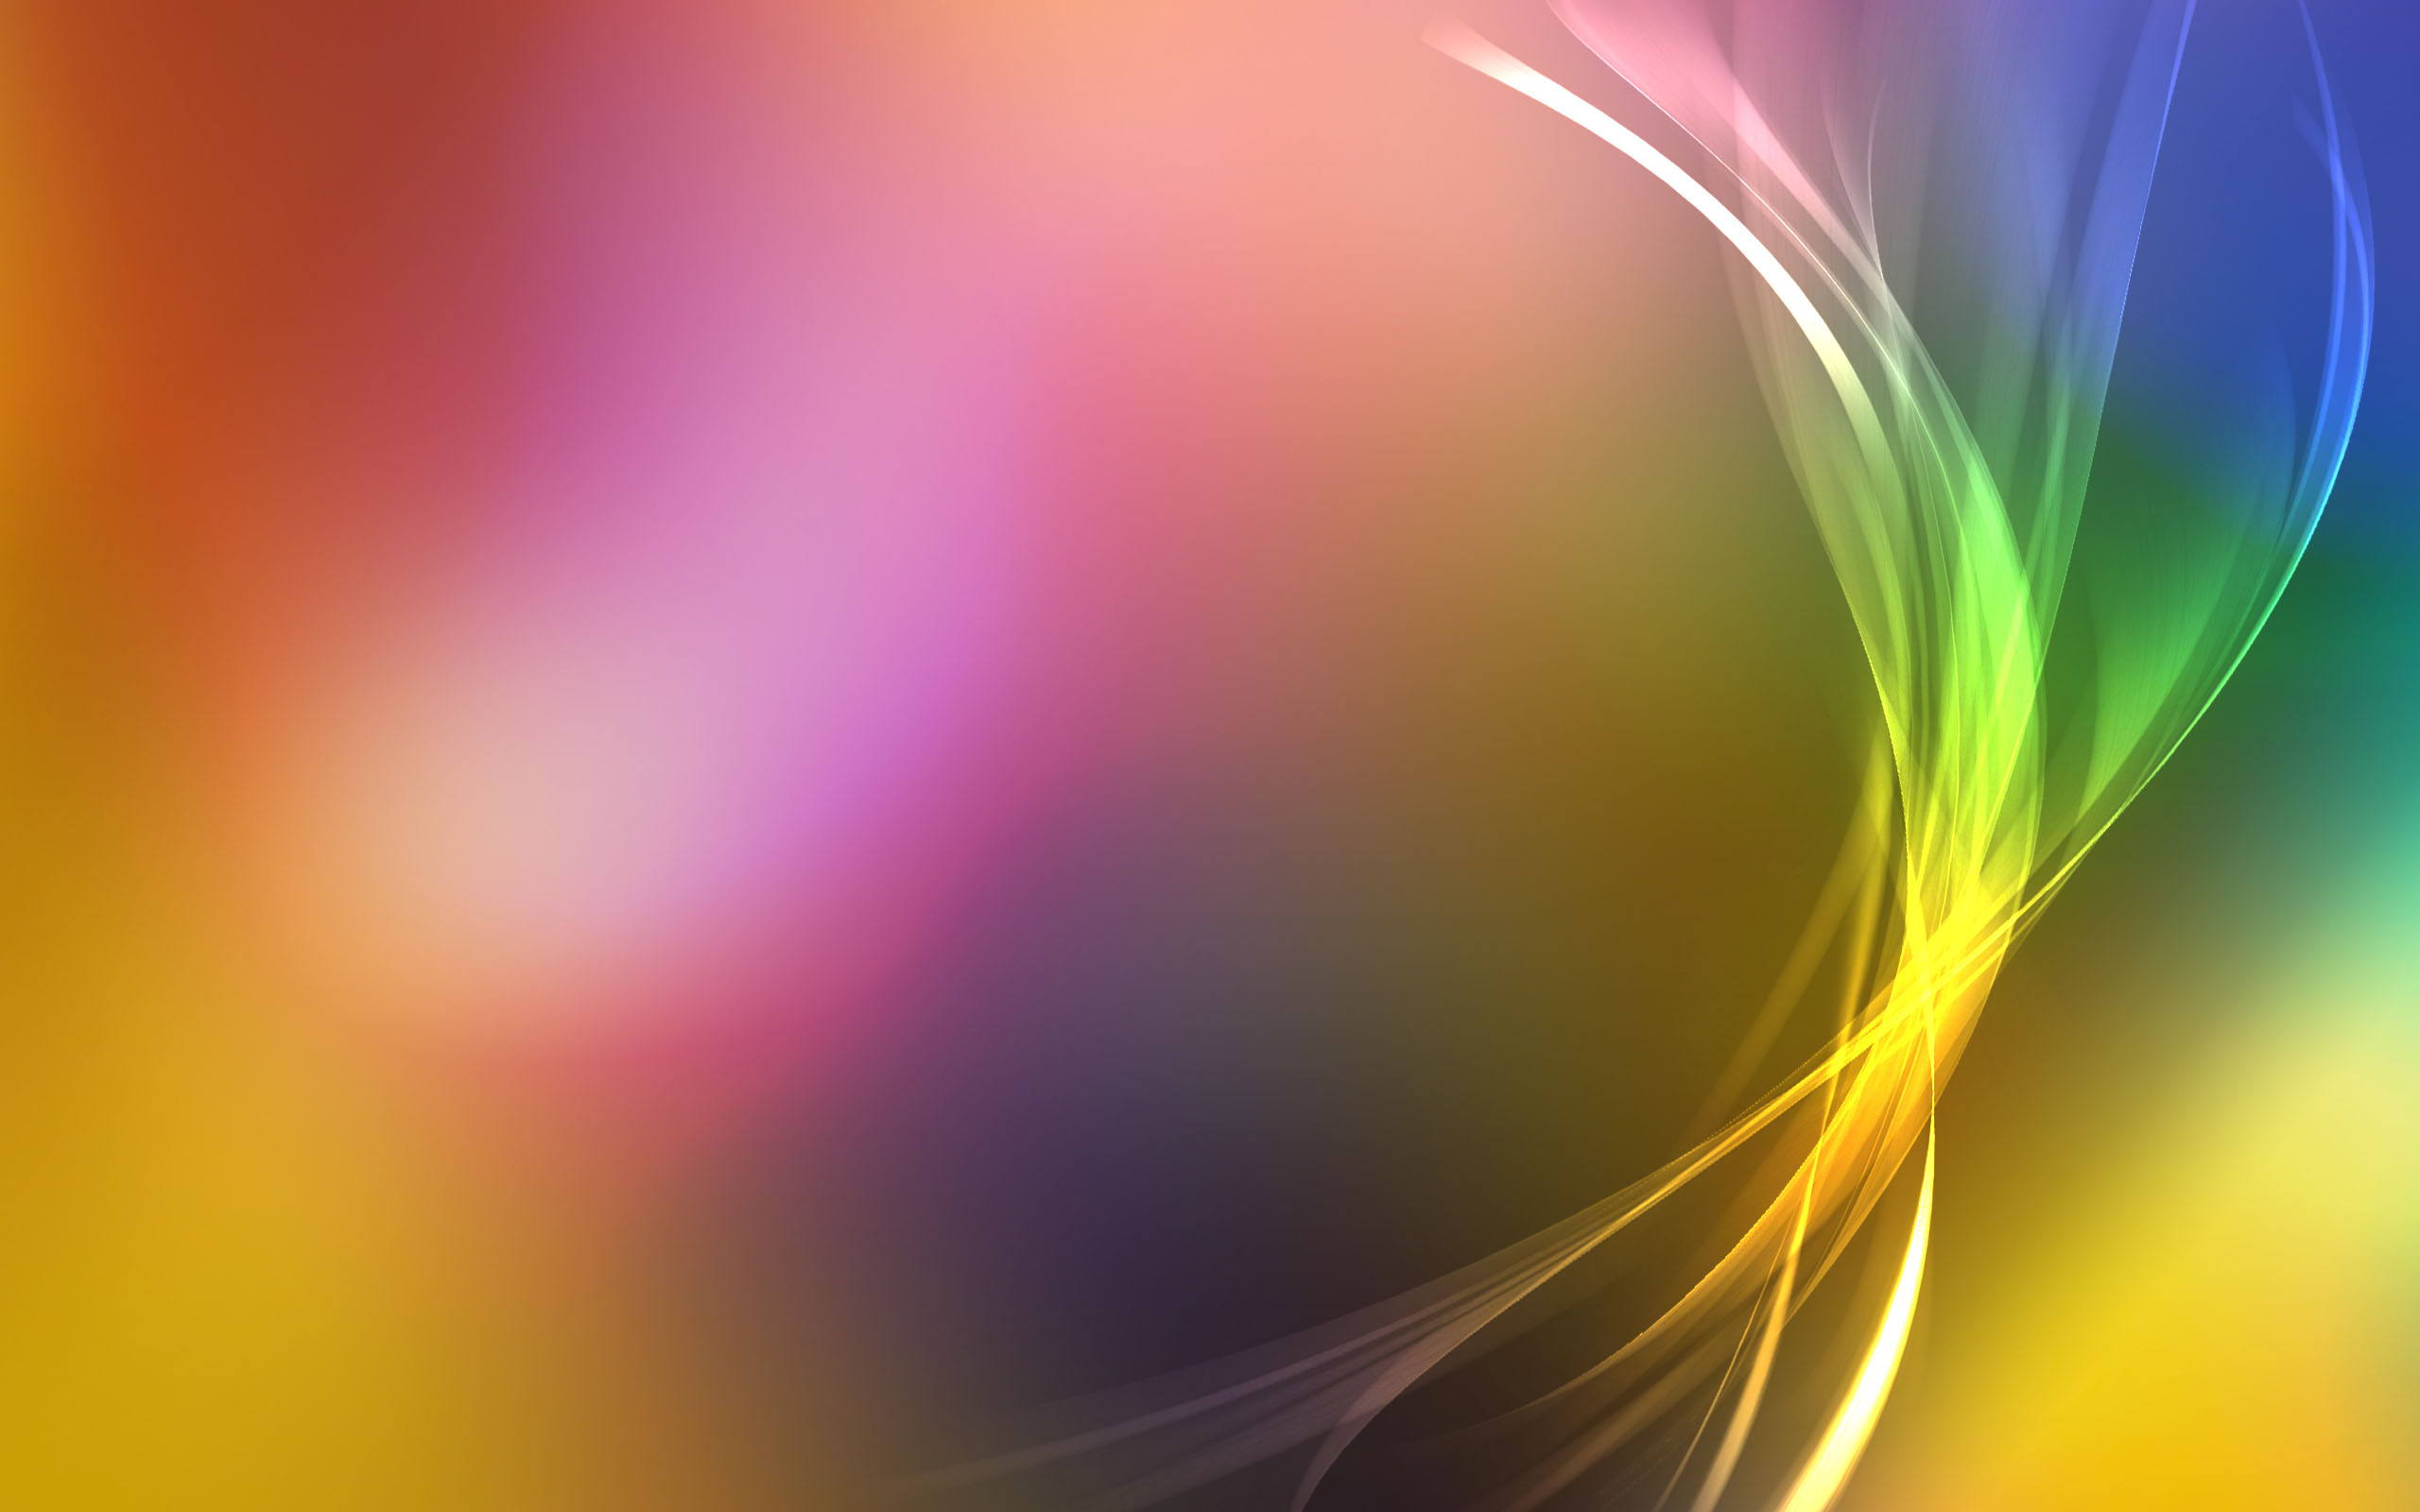 Wallpapers wallpaper Colorful Wallpapers hd wallpaper background 2560x1600